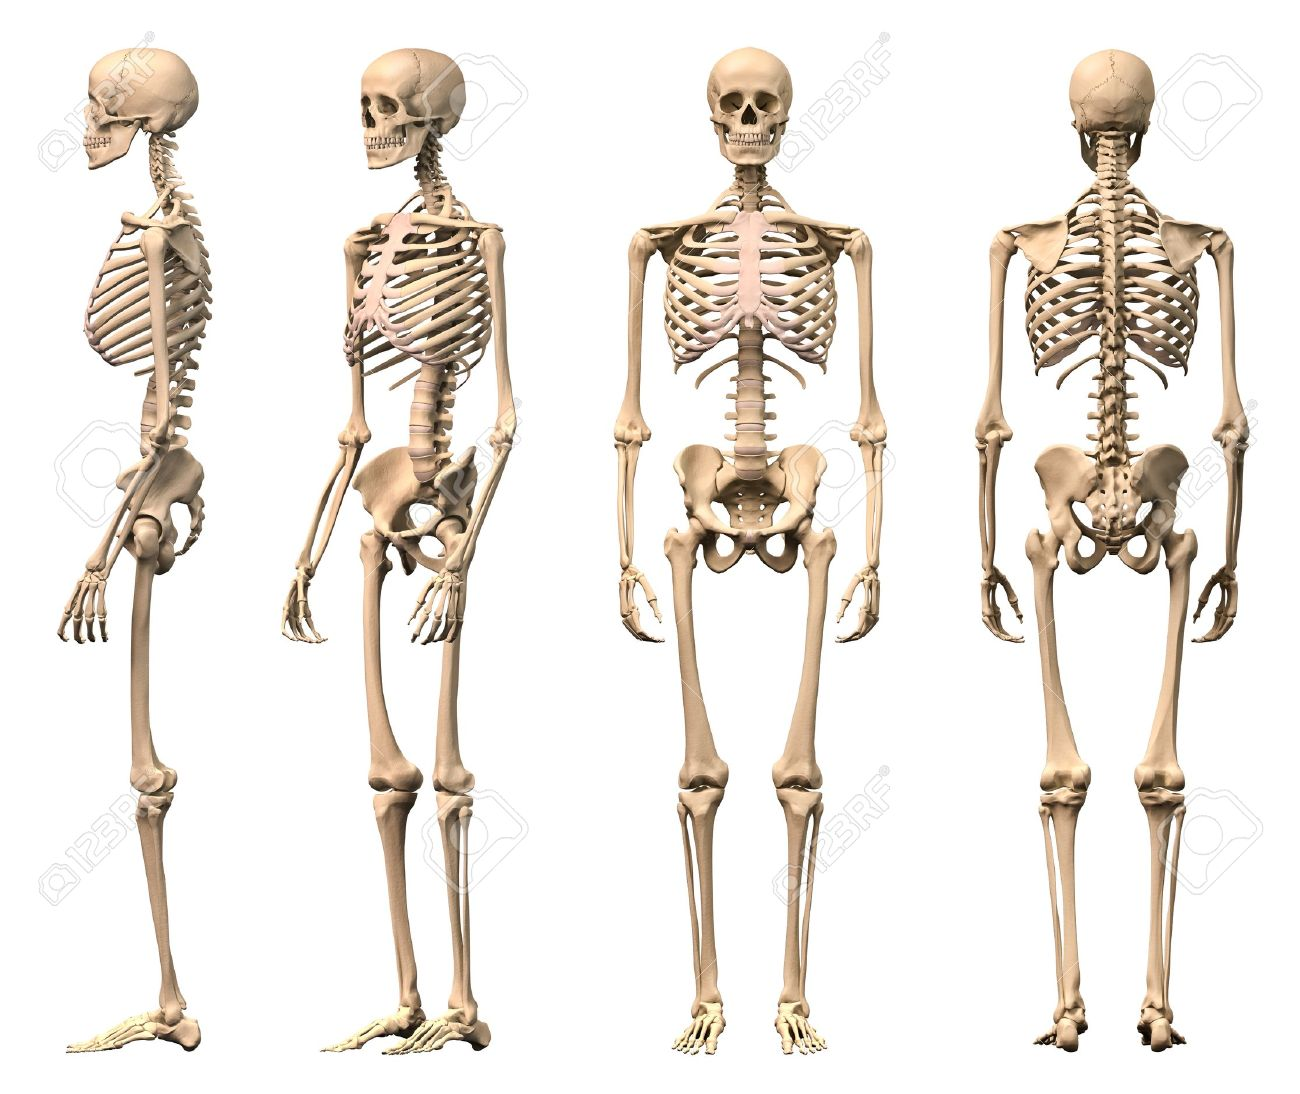 Skeletal anatomy diagram human male example electrical circuit male human skeleton four views front back side and perspective rh 123rf com human skeleton diagram rear view human skeleton diagram rear view ccuart